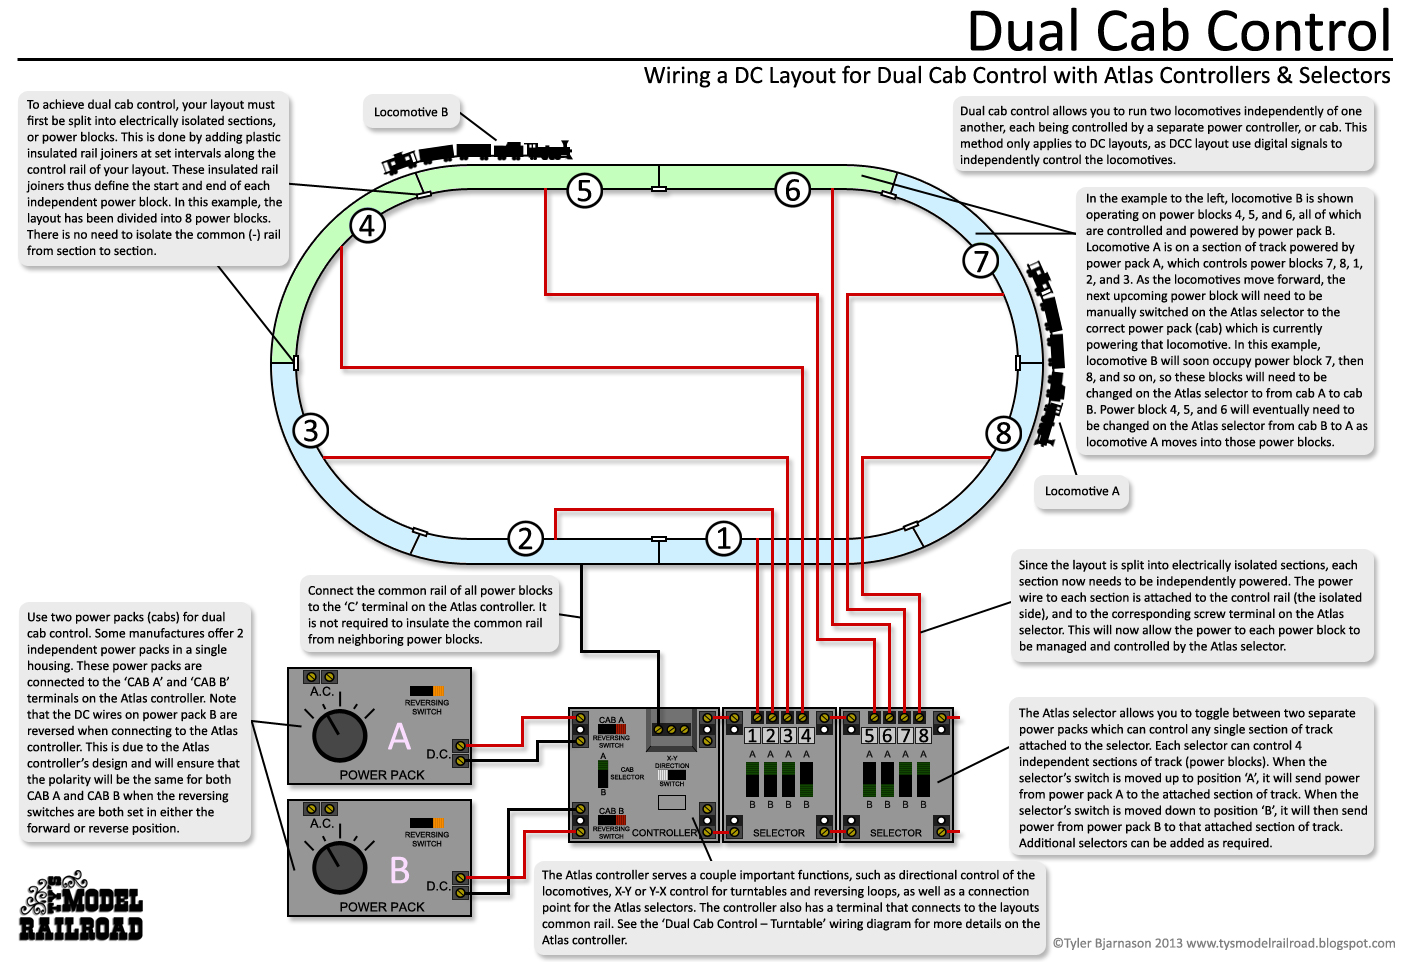 how to wire a layout for dual cab control using an atlas controller and  selectors